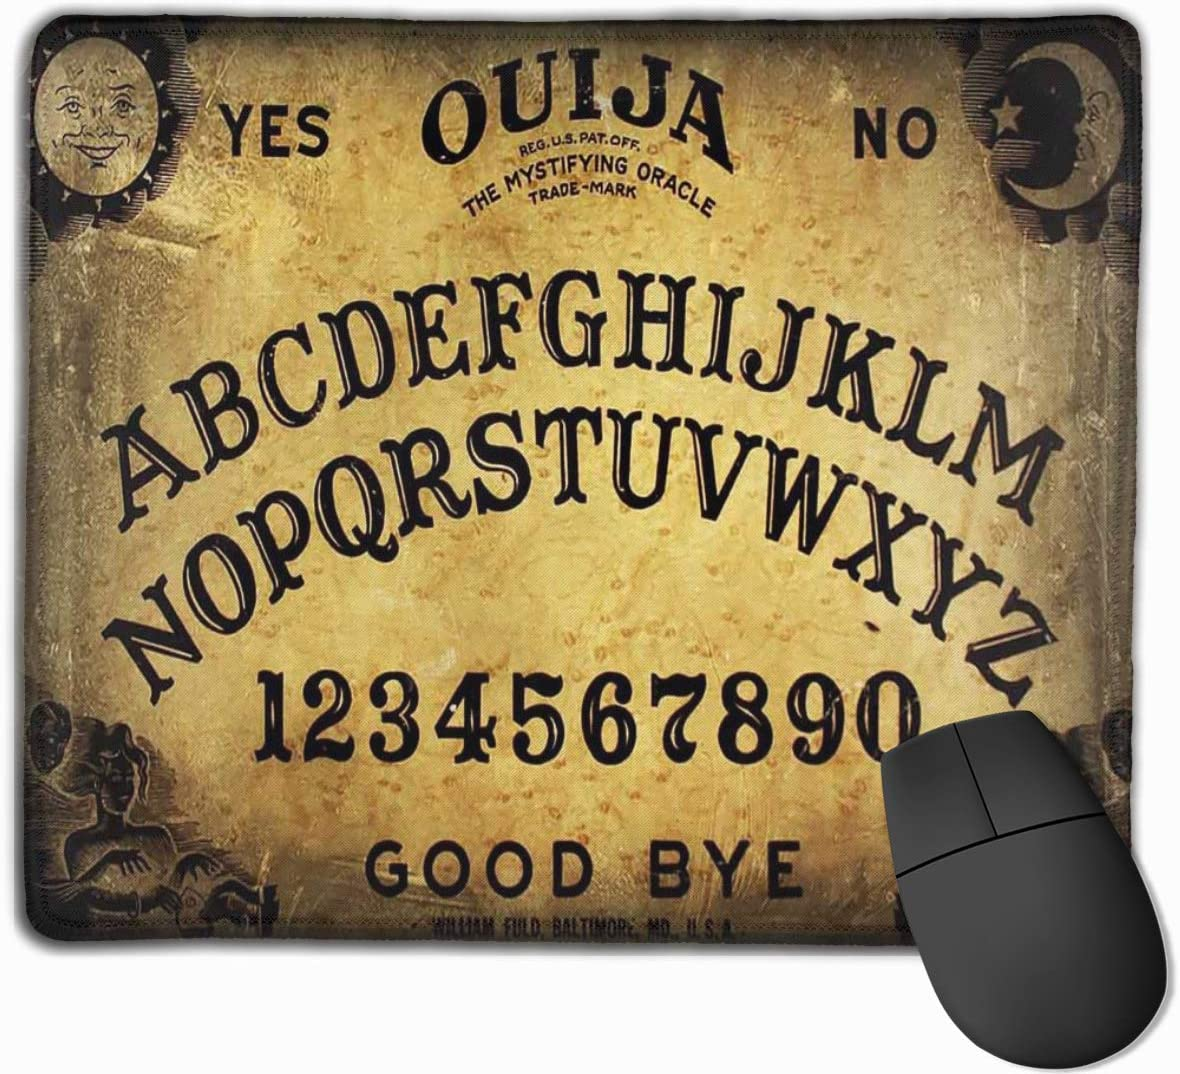 Mouse Pad Customized Dangerous Magical Game Ouija Board Pattern Mouse Mat Non-Slip Rubber Base Mousepad for Computer Laptop PC Gaming Working Office & Home 11.8 X 9.8 Inch